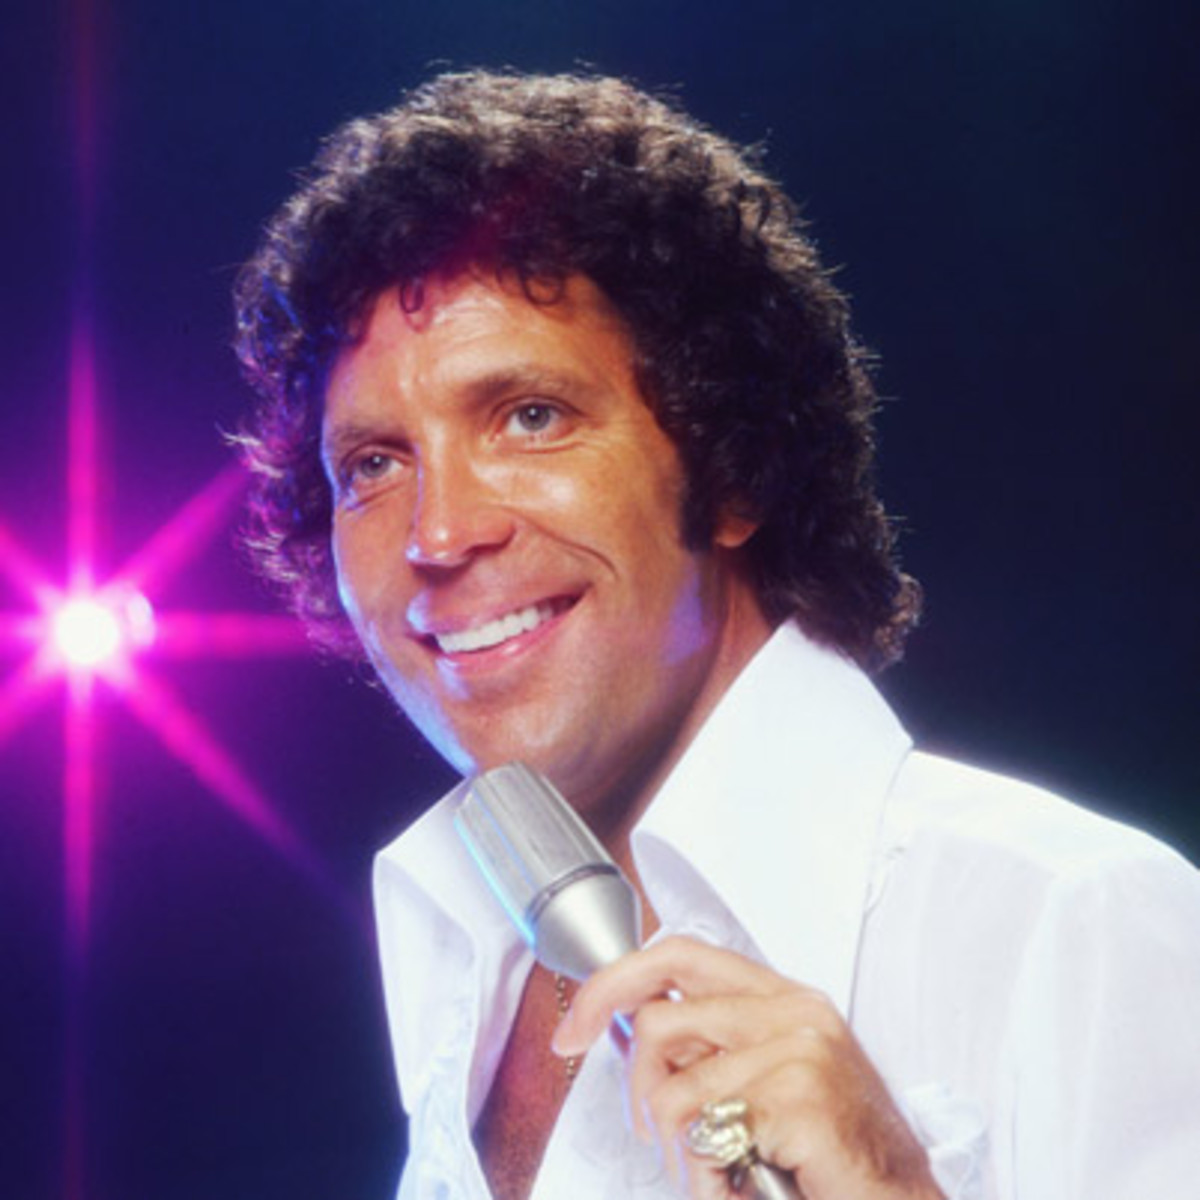 Tom Jones photo